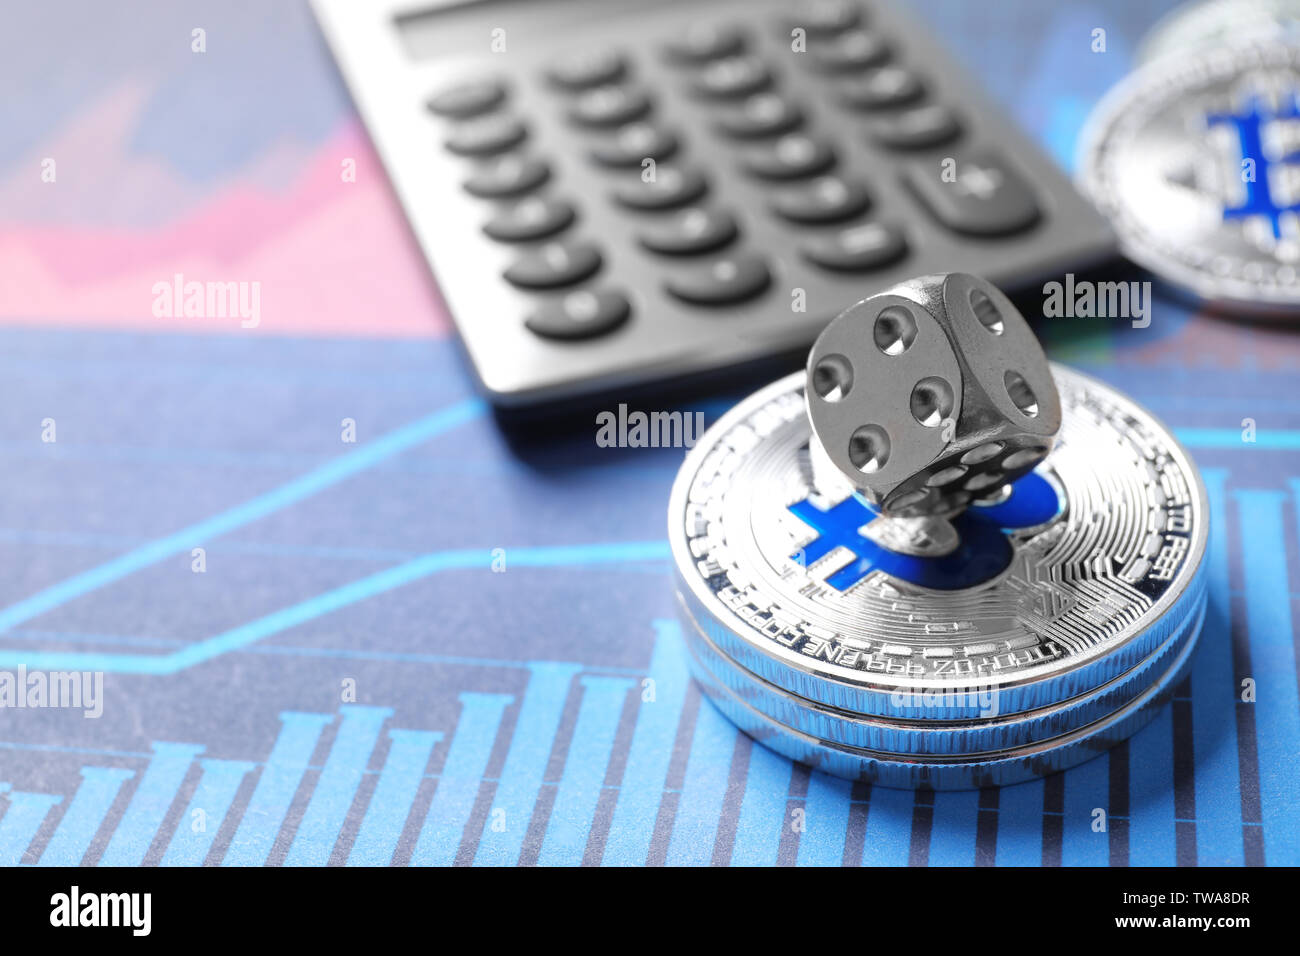 Silver bitcoins, dice and calculator on chart. Finance trading - Stock Image